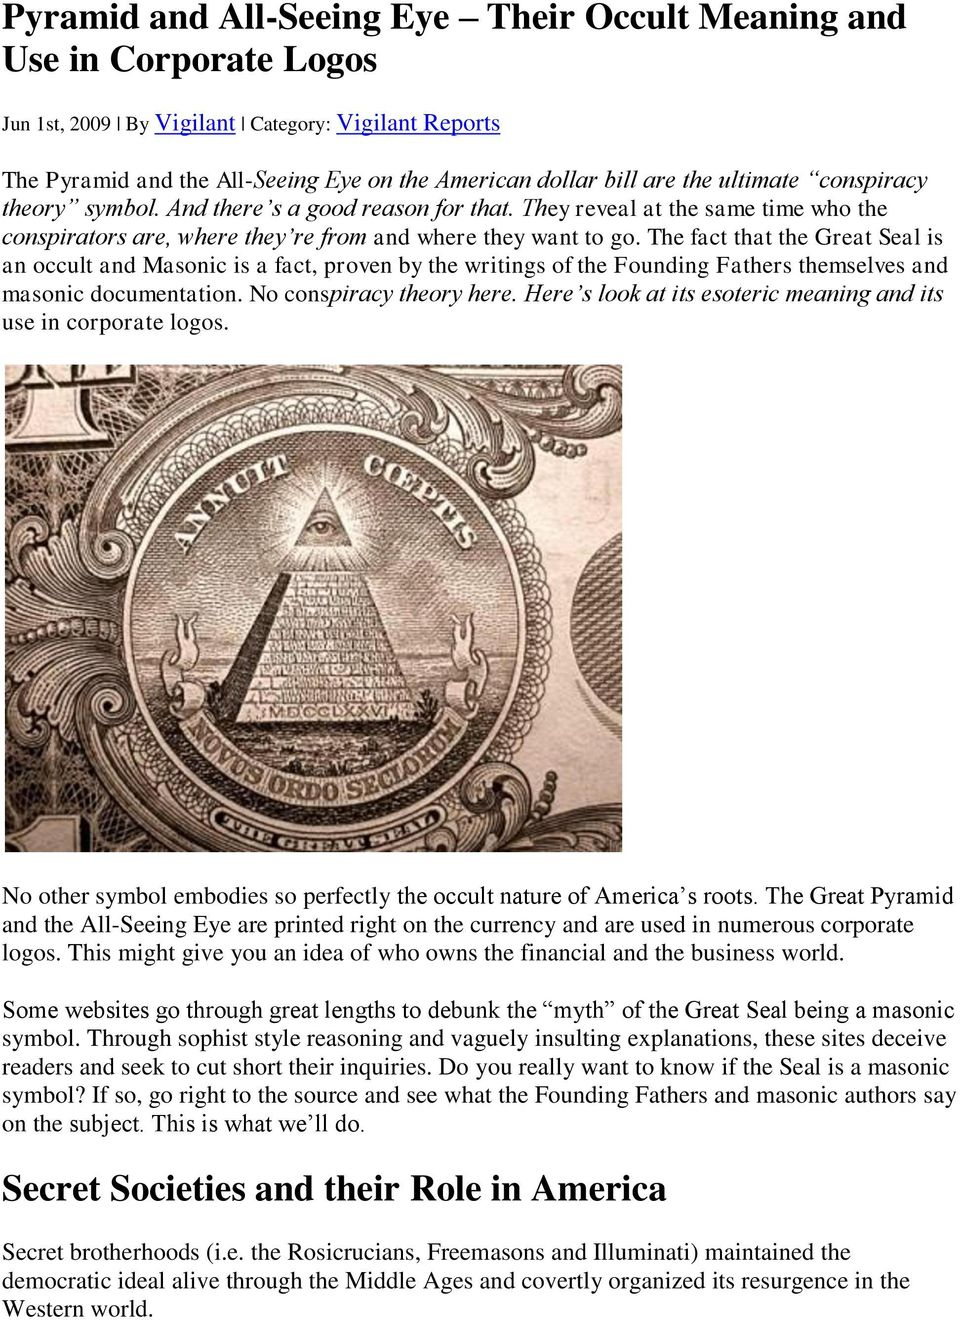 Pyramid And All Seeing Eye Their Occult Meaning And Use In Corporate